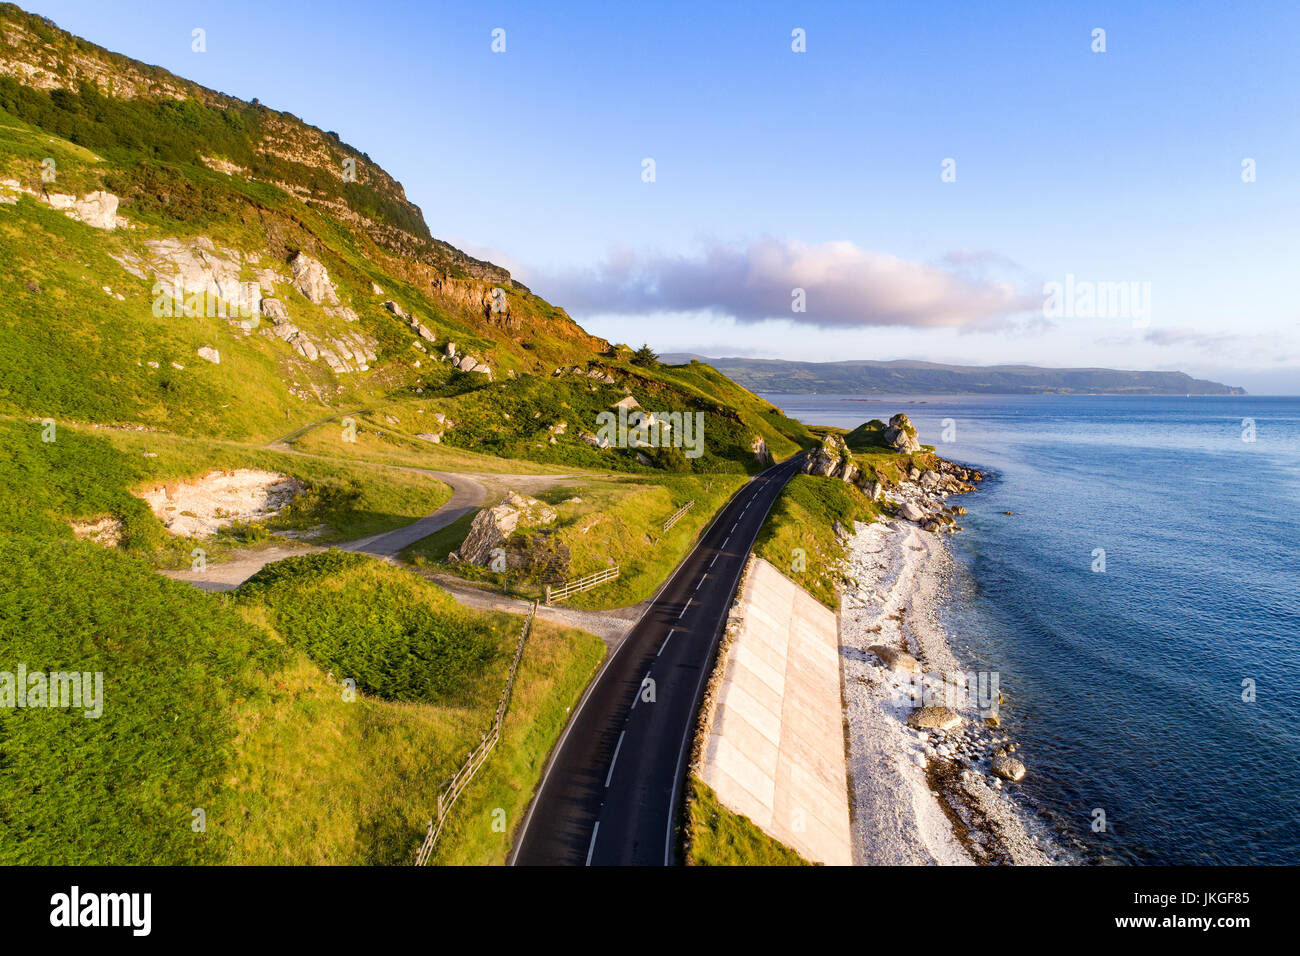 The eastern coast of Northern Ireland and Antrim Coast Road, a.k.a. Giant's Causeway Coastal Route with concrete - Stock Image